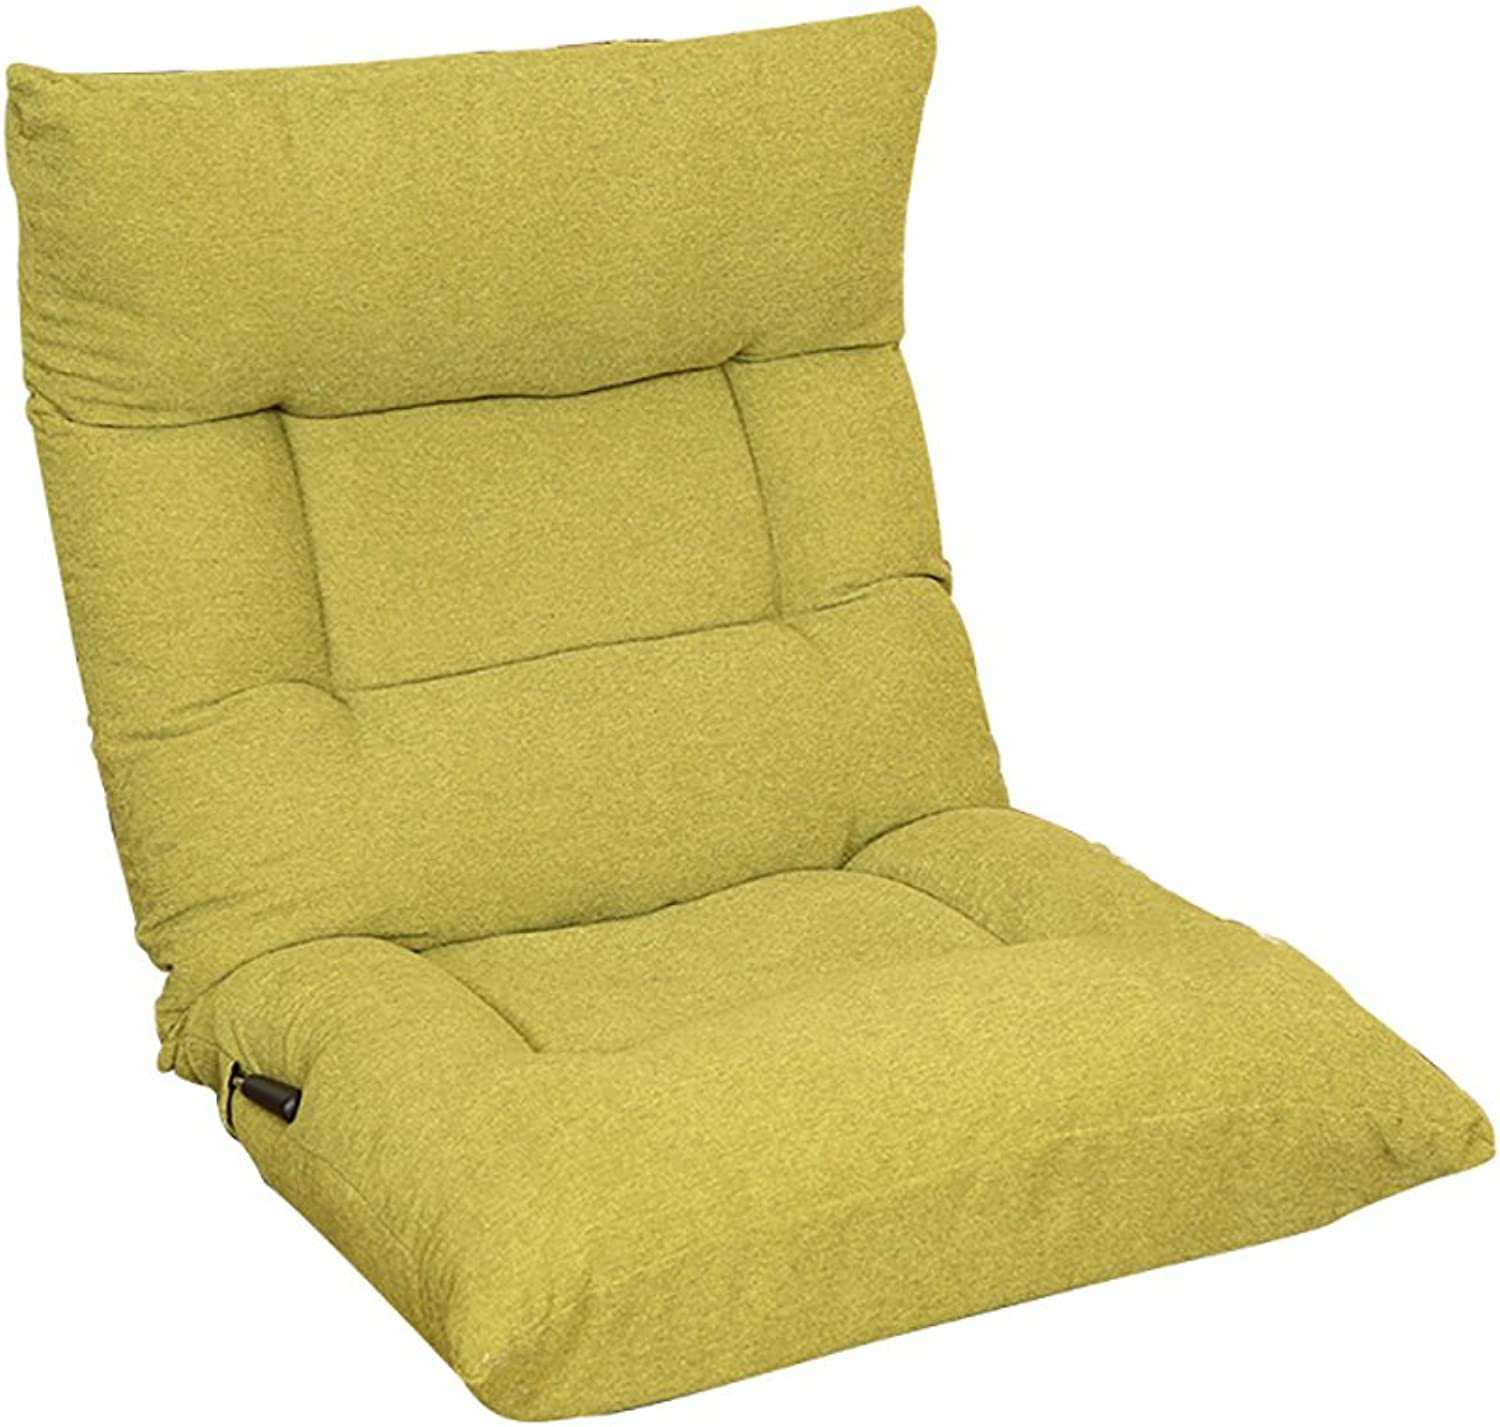 aquí tiene la última Beanbag PHTW HTZ Lazy Sofa, Dorm, Bed Back Sofa Sofa Sofa (Plegable) + (Color   Fruit verde)  perfecto